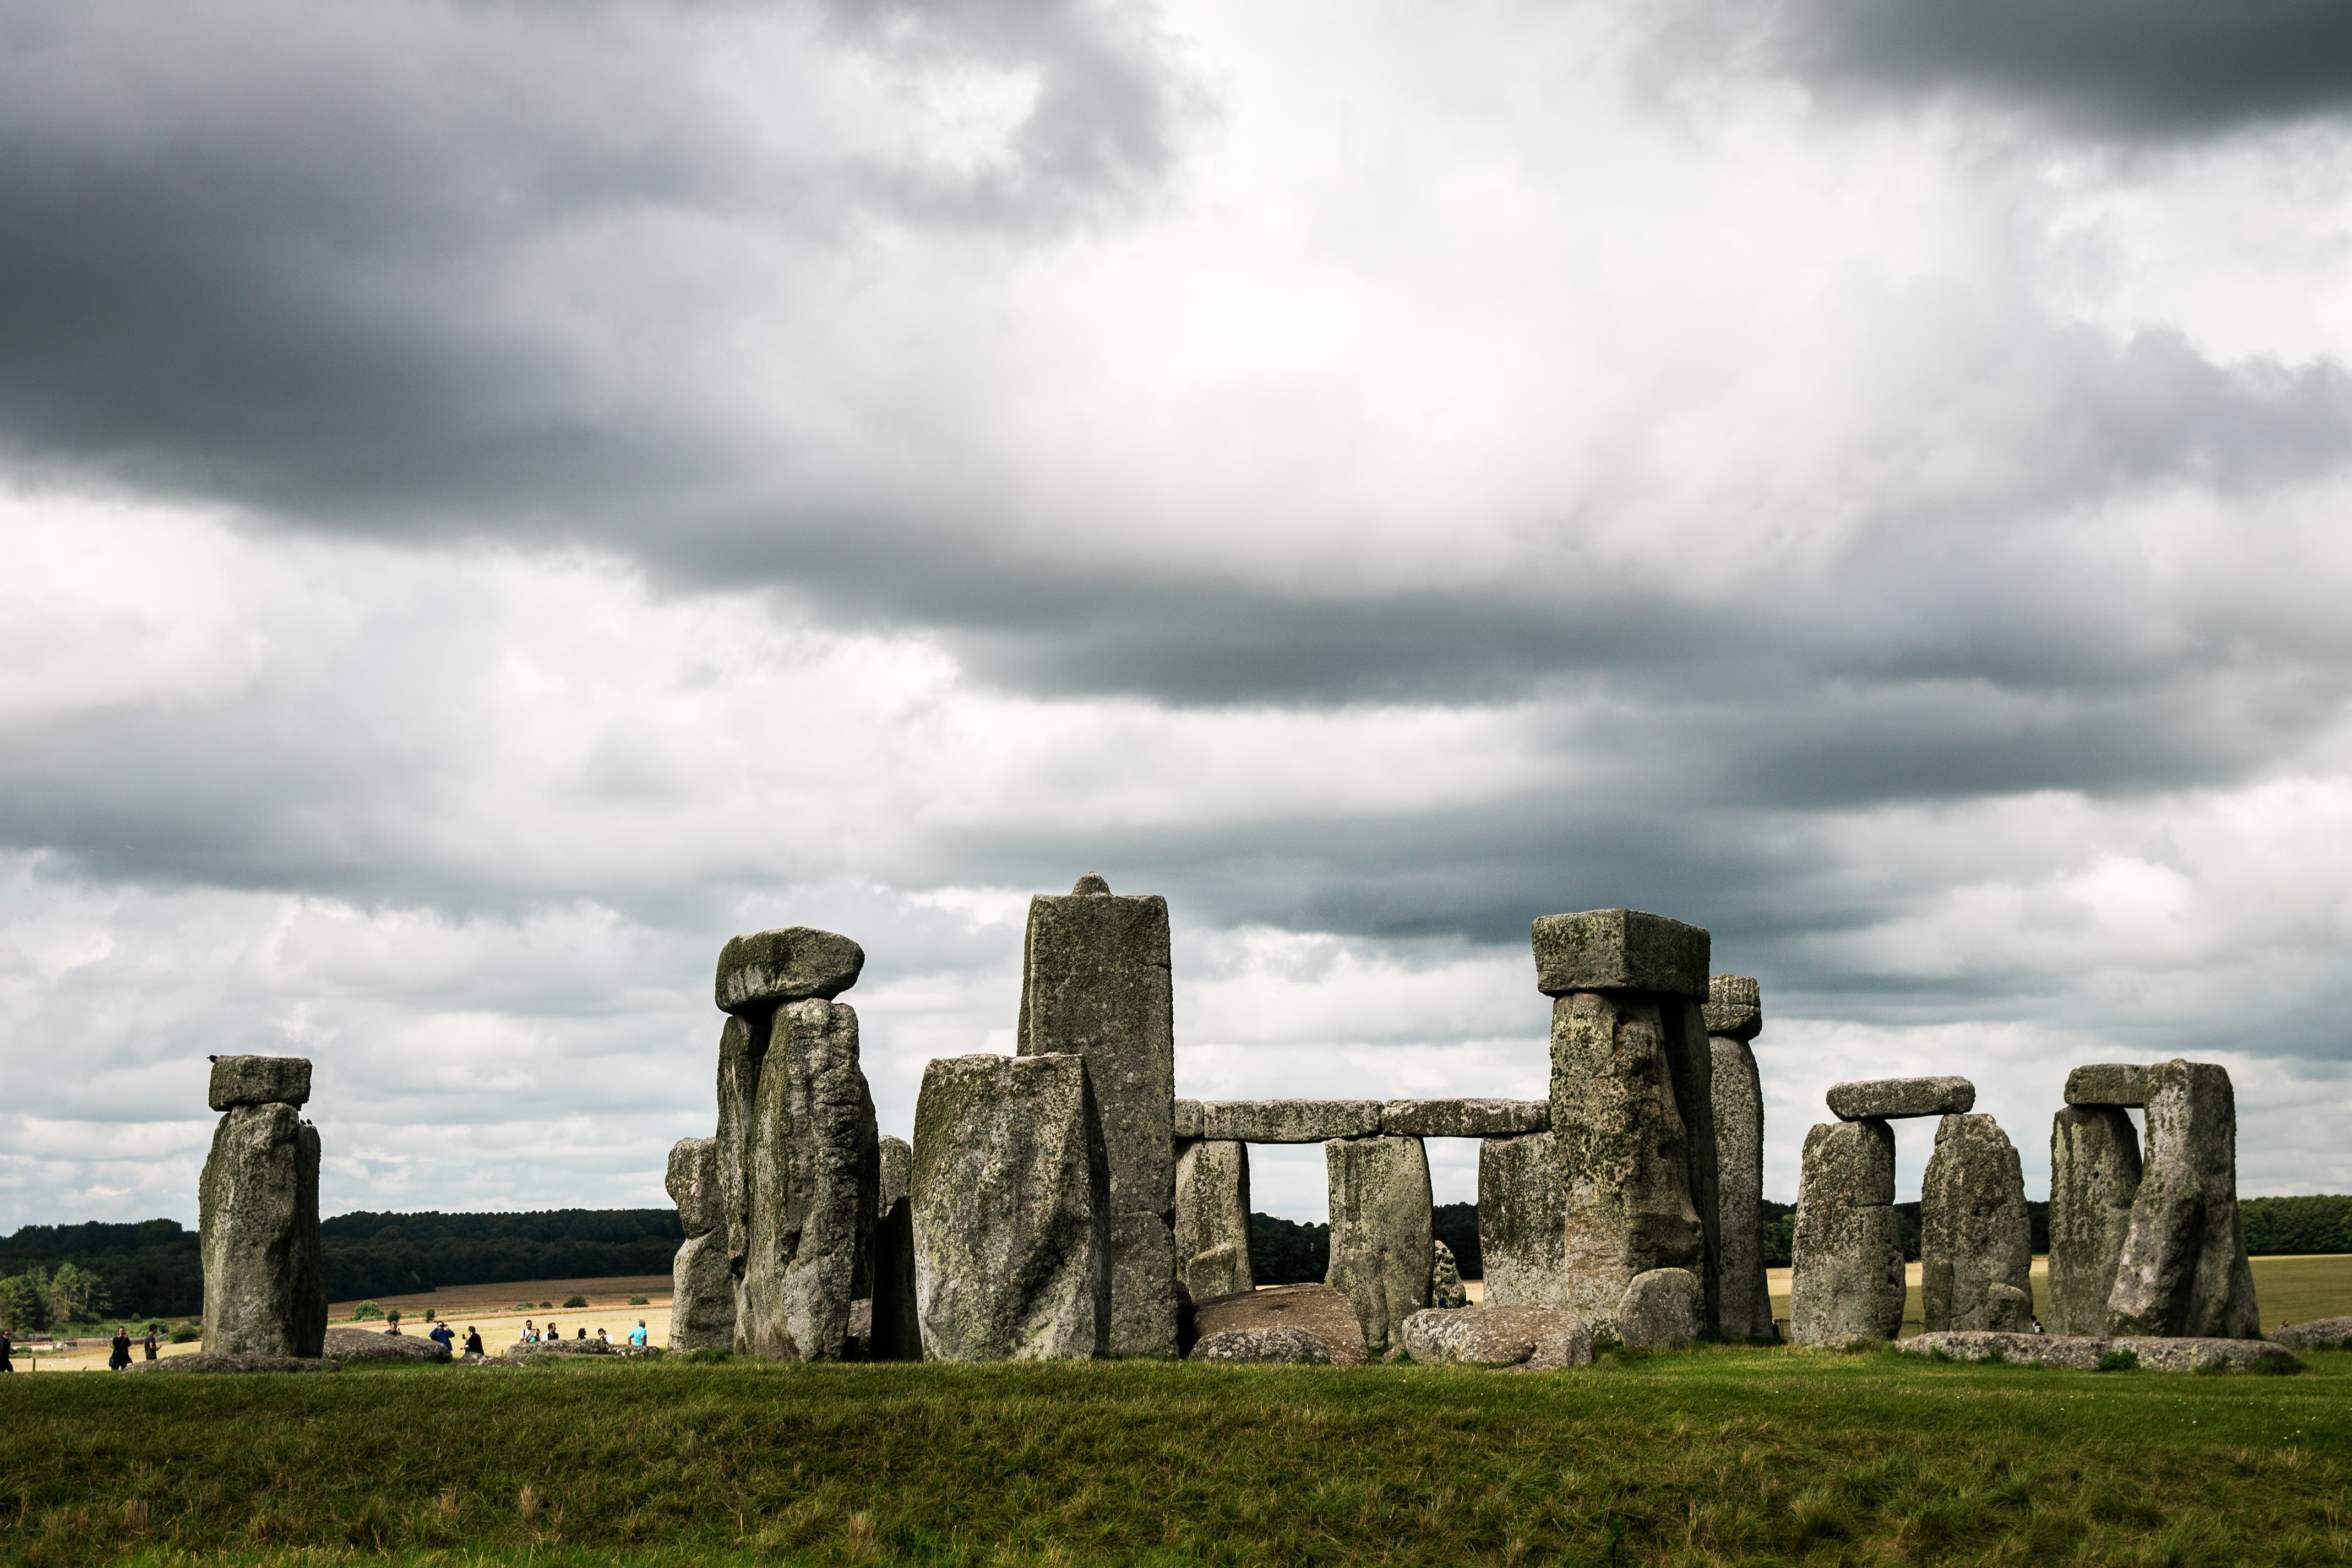 Clouds over iconic Stonehenge rock formations